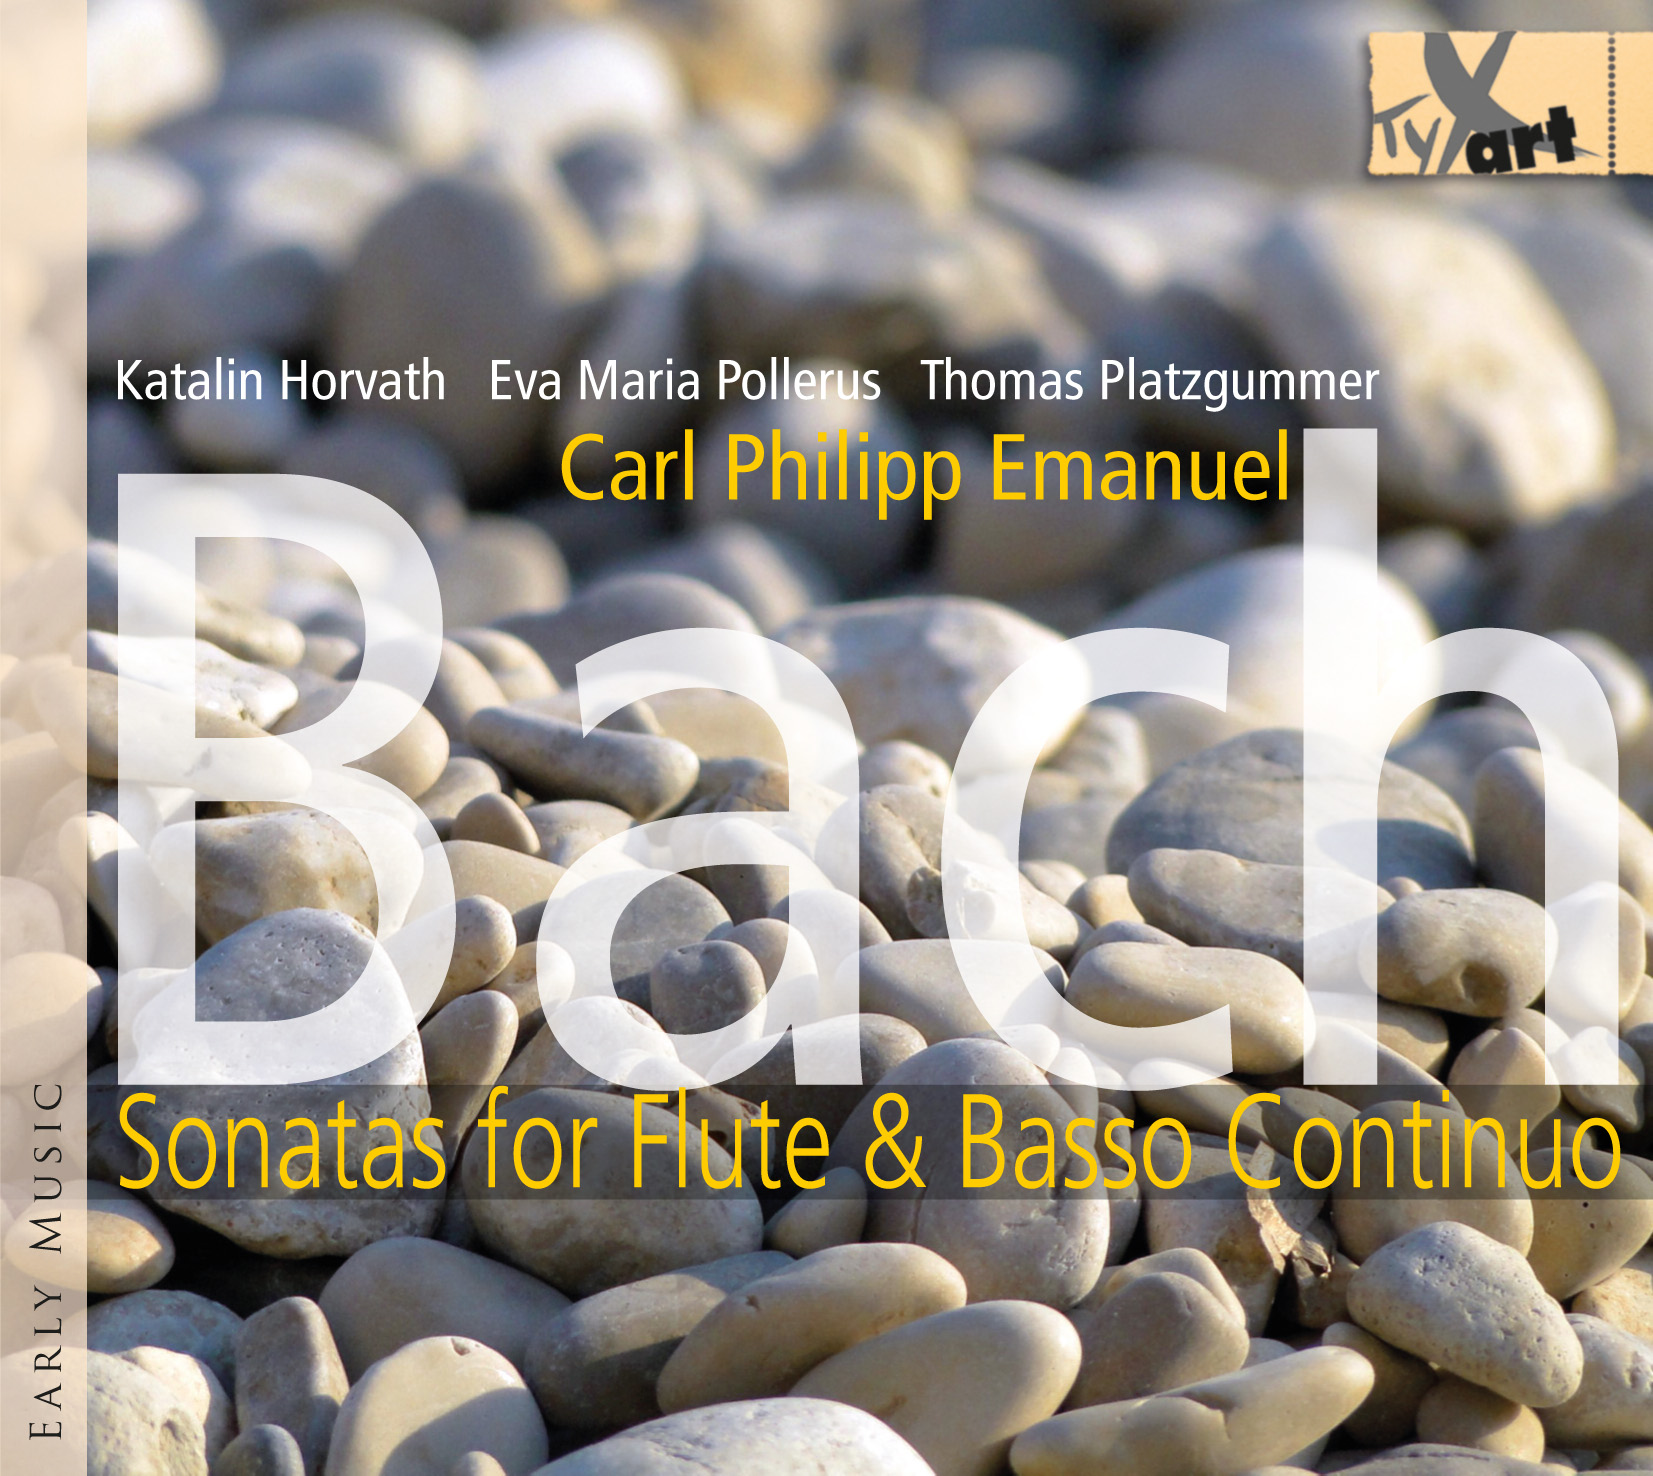 Carl Philipp Emanuel Bach - Sonatas for Flute and Basso Continuo